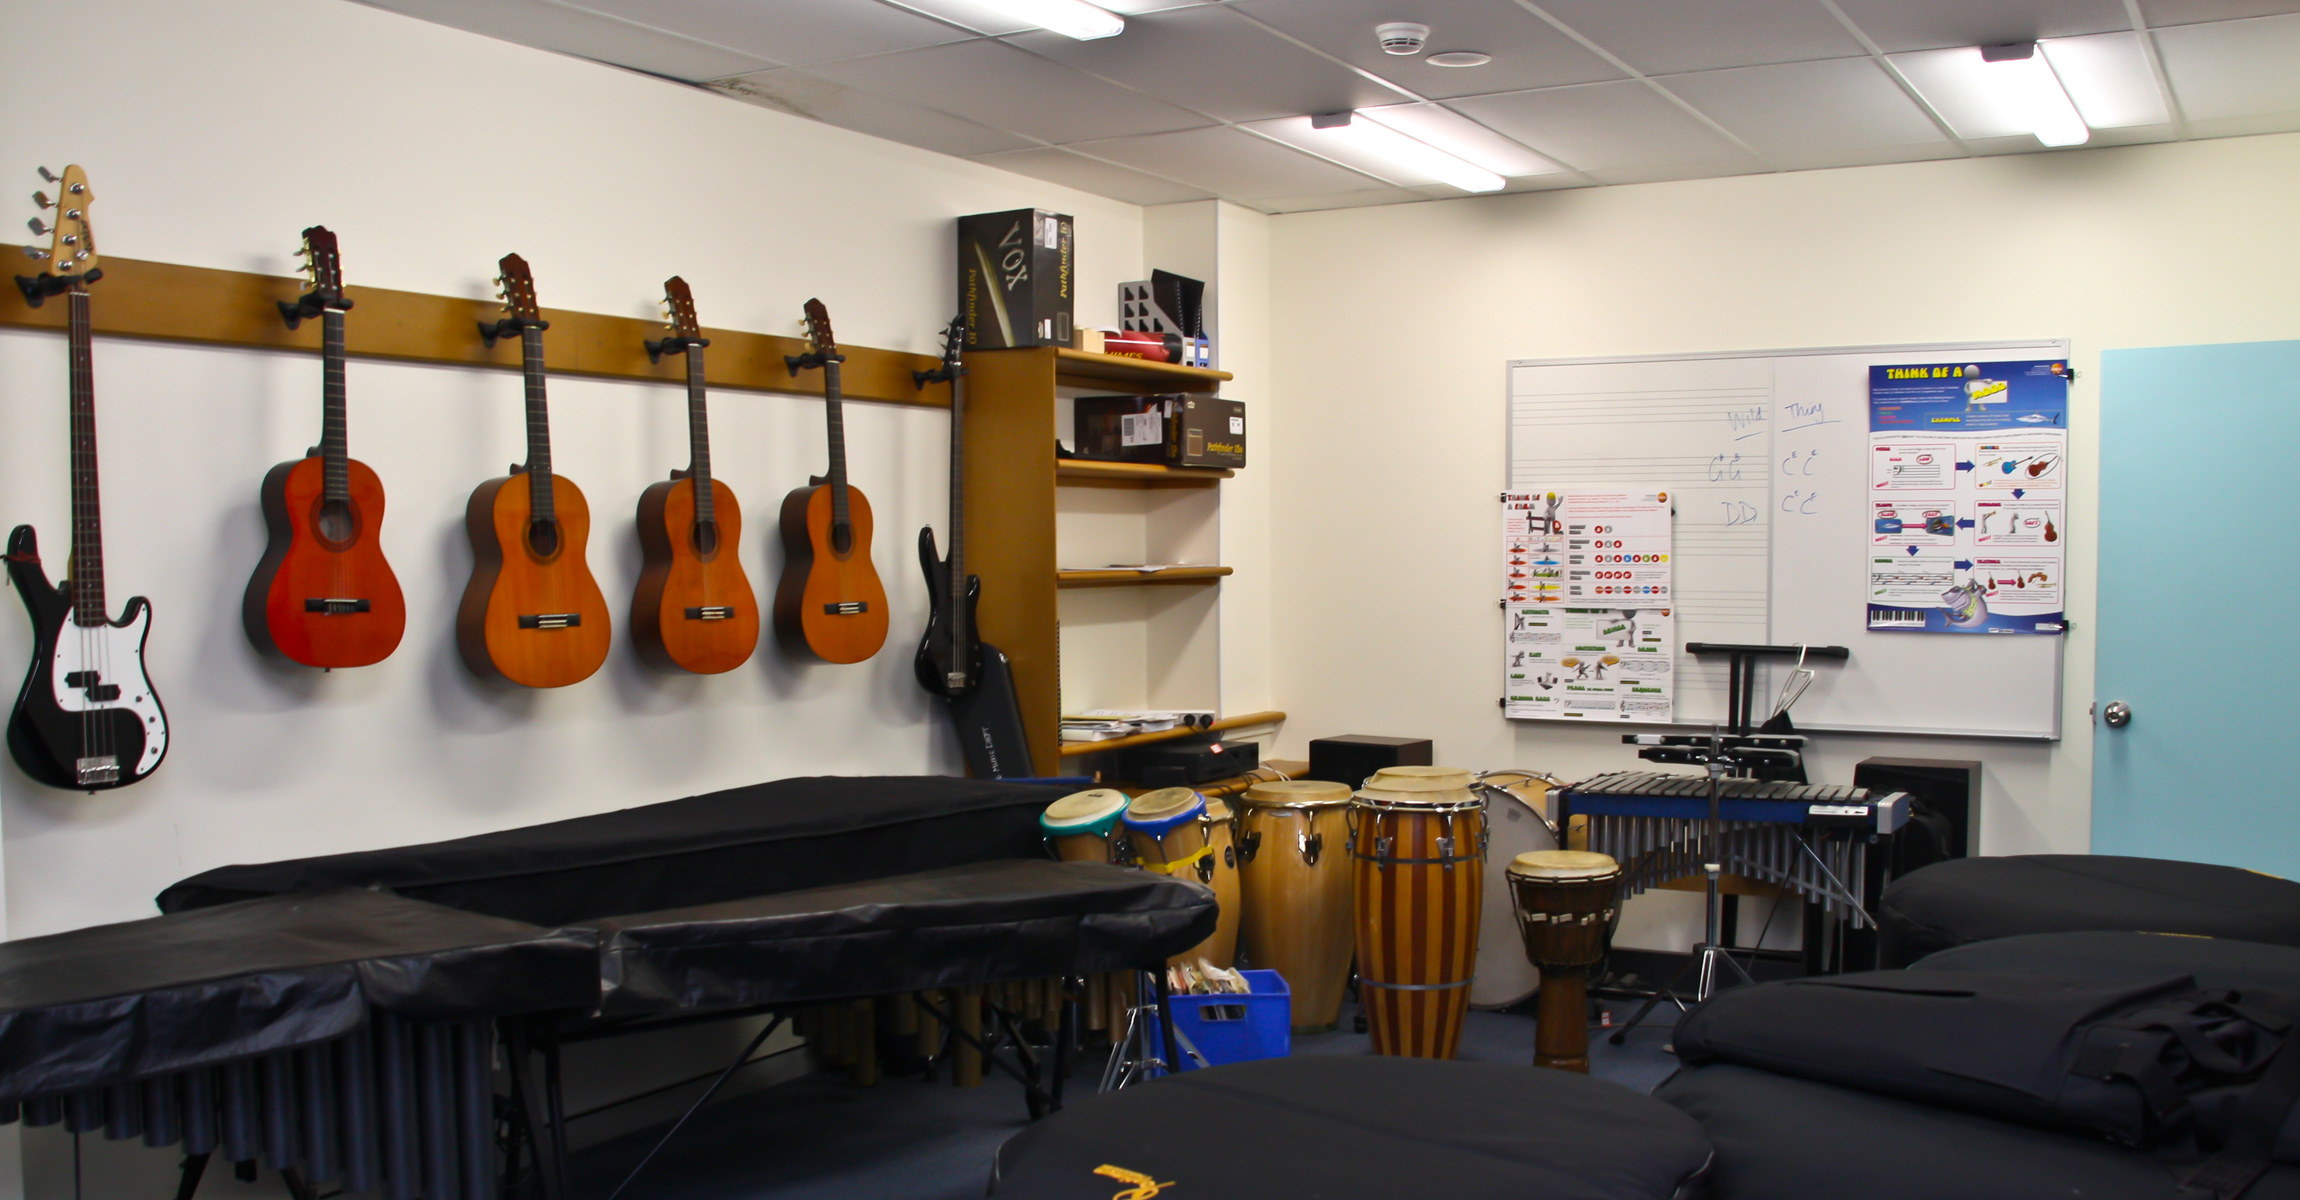 School Music Room Building Services